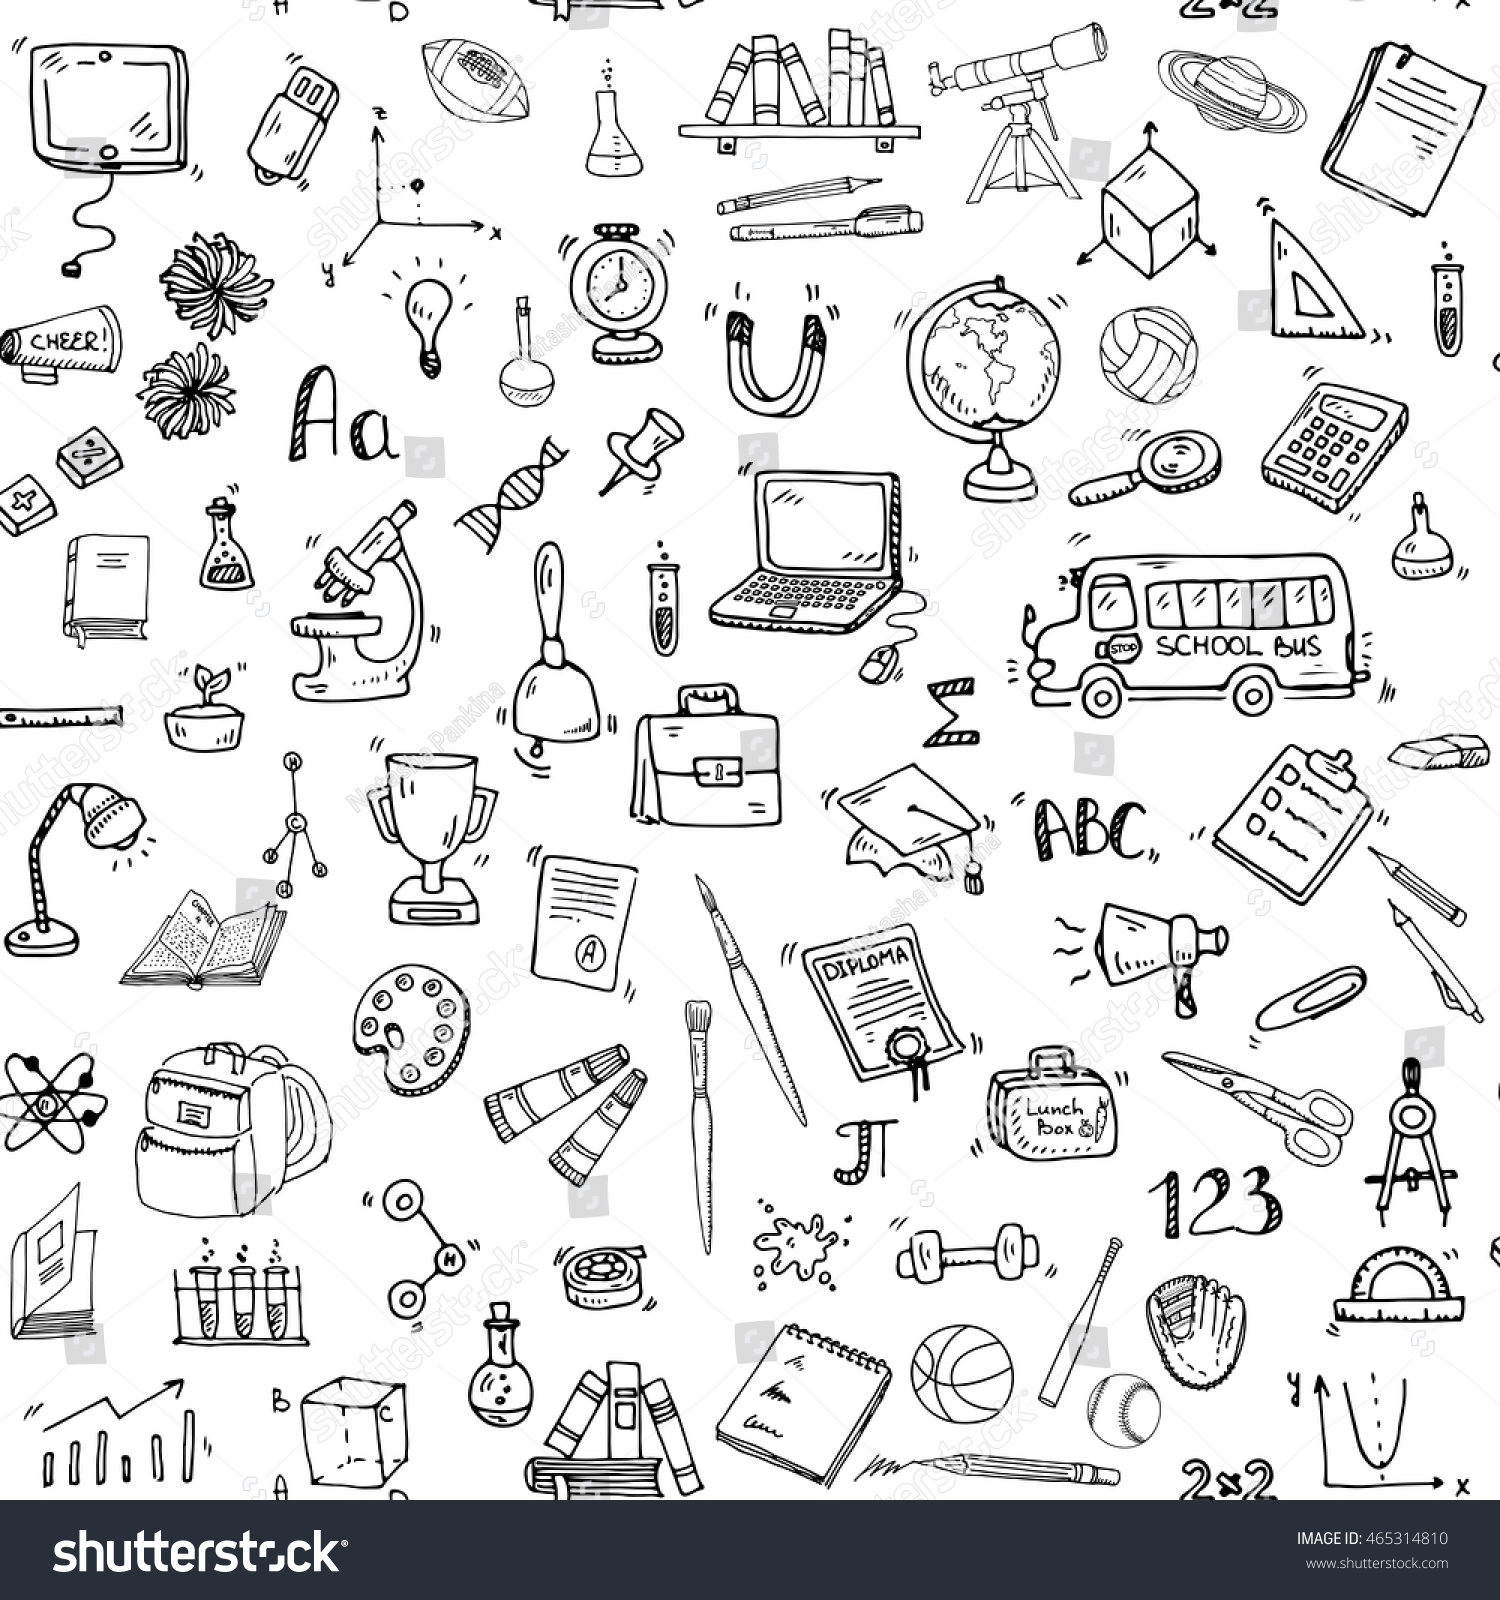 Seamless background with hand drawn doodle School icons set Vector illustration educational symbols Cartoon learning elements Laptop Lunch box Bag Microscope Telescope Books Pencil Sketch bus